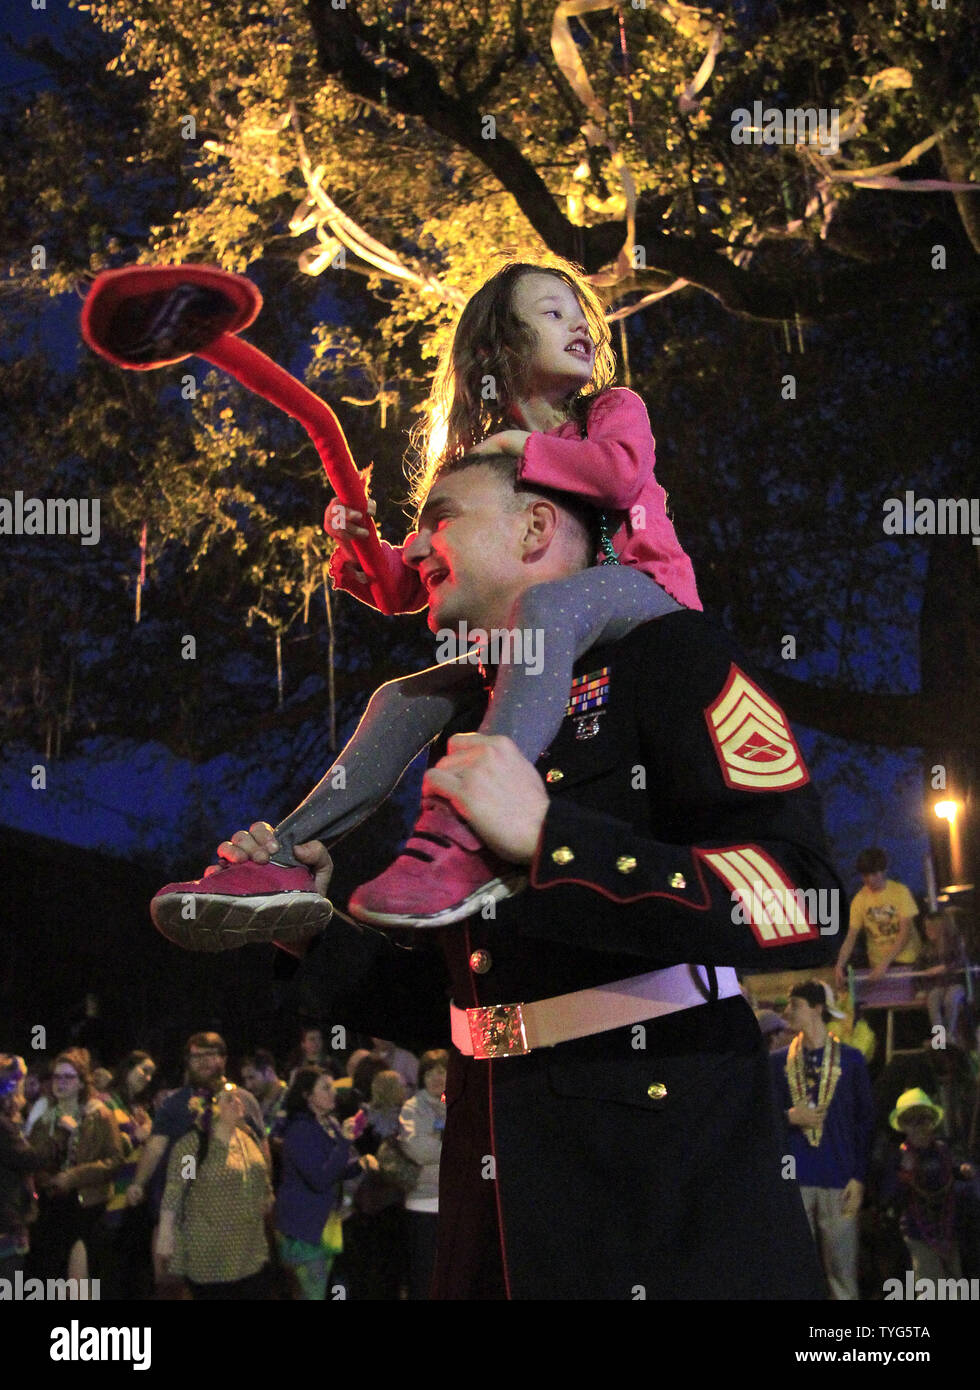 U.S. Marine Corps Gunnery Sgt. Christopher Broadstreet holds Audrey Stewart, 5, daughter of a military buddy, on his shoulders during the Bacchus Mardi Gras parade Sunday, February 26, 2017. The Krewe of Bacchus has been rolling on the traditional Uptown route since 1969. Photo by AJ Sisco/UPI Stock Photo